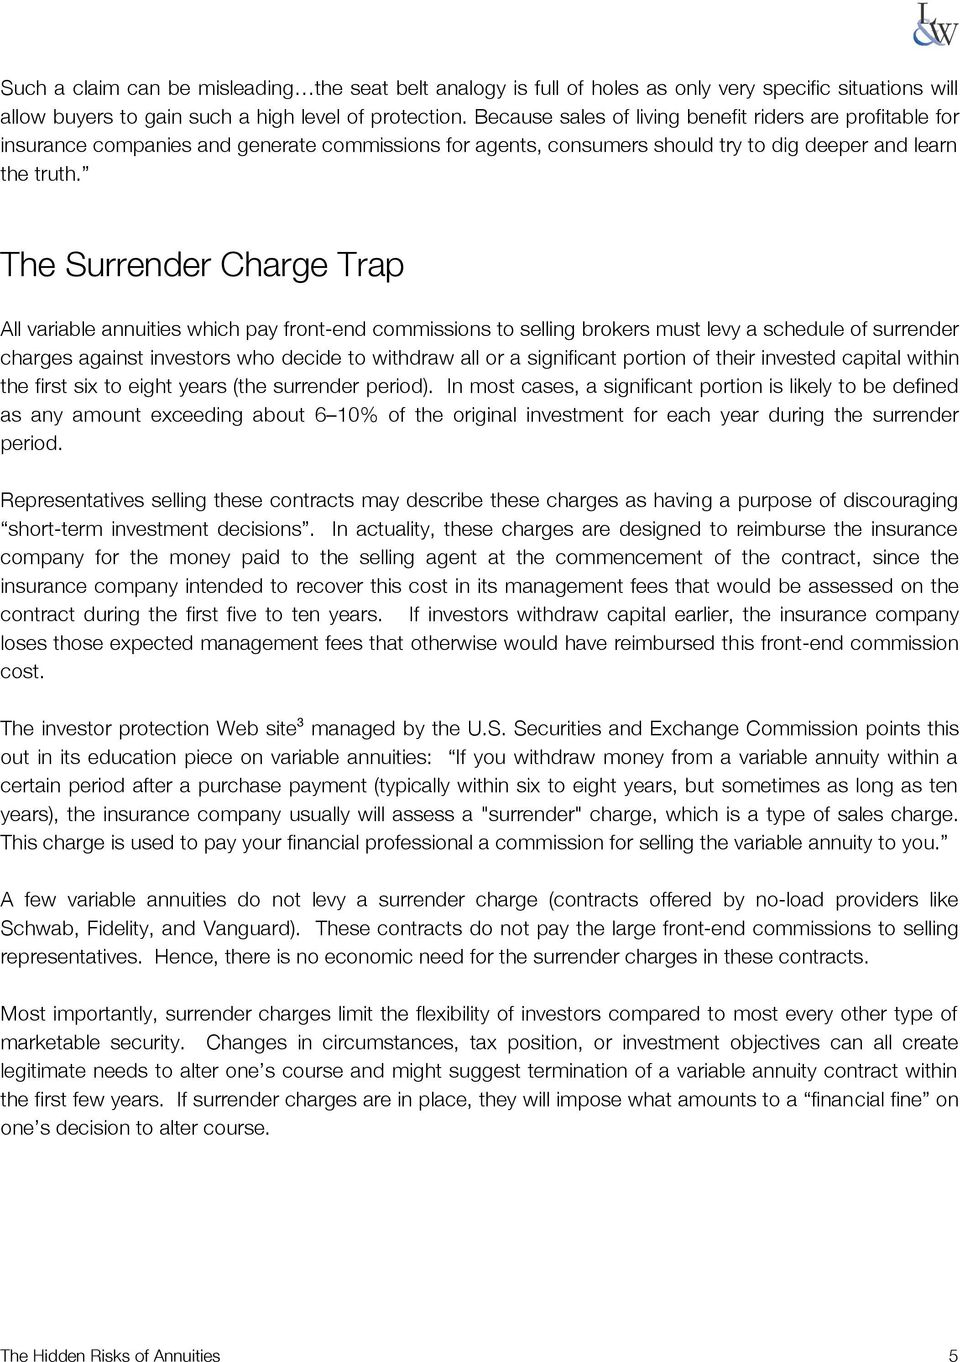 The Surrender Charge Trap All variable annuities which pay front-end commissions to selling brokers must levy a schedule of surrender charges against investors who decide to withdraw all or a